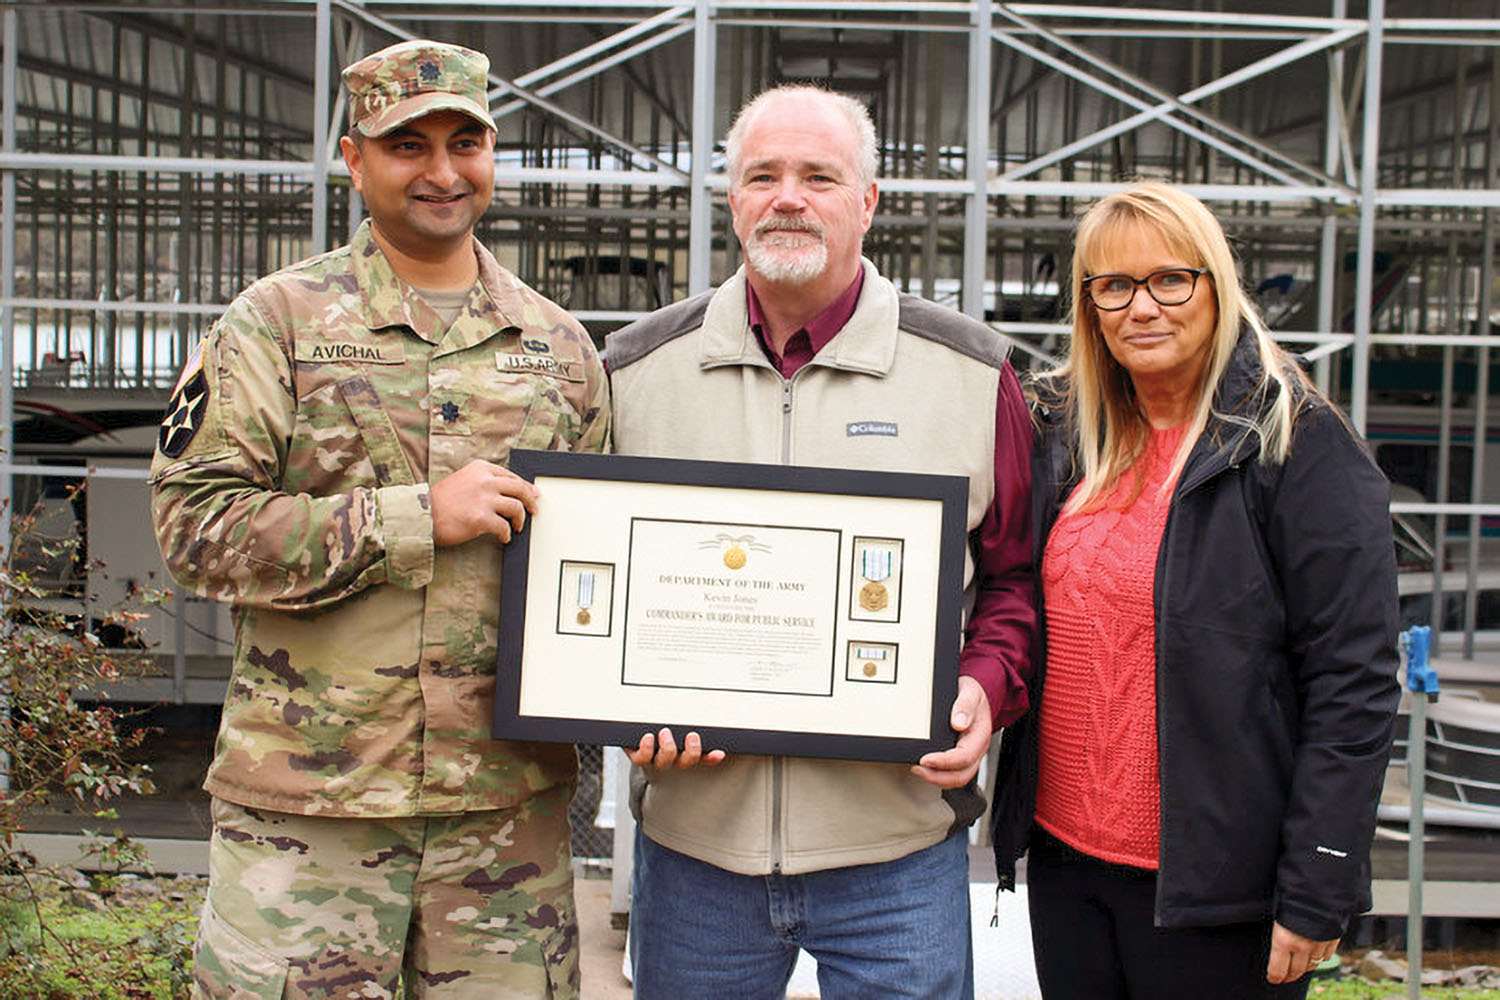 Lt. Col. Sonny B. Avichal, Nashville Engineer District commander, left, with Kevin and Donna Jones. The Corps presented Kevin Jones with the Army Commander's Award for Public Service after he rescued a man whose vehicle entered a water at a marina boat ramp. Kevin Jones is one of the co-owners of Wildwood Resort and Marina on Cordell Hull Lake in Granville, Tenn. (Photo by Ashley Webster, U.S. Army Corps of Engineers)